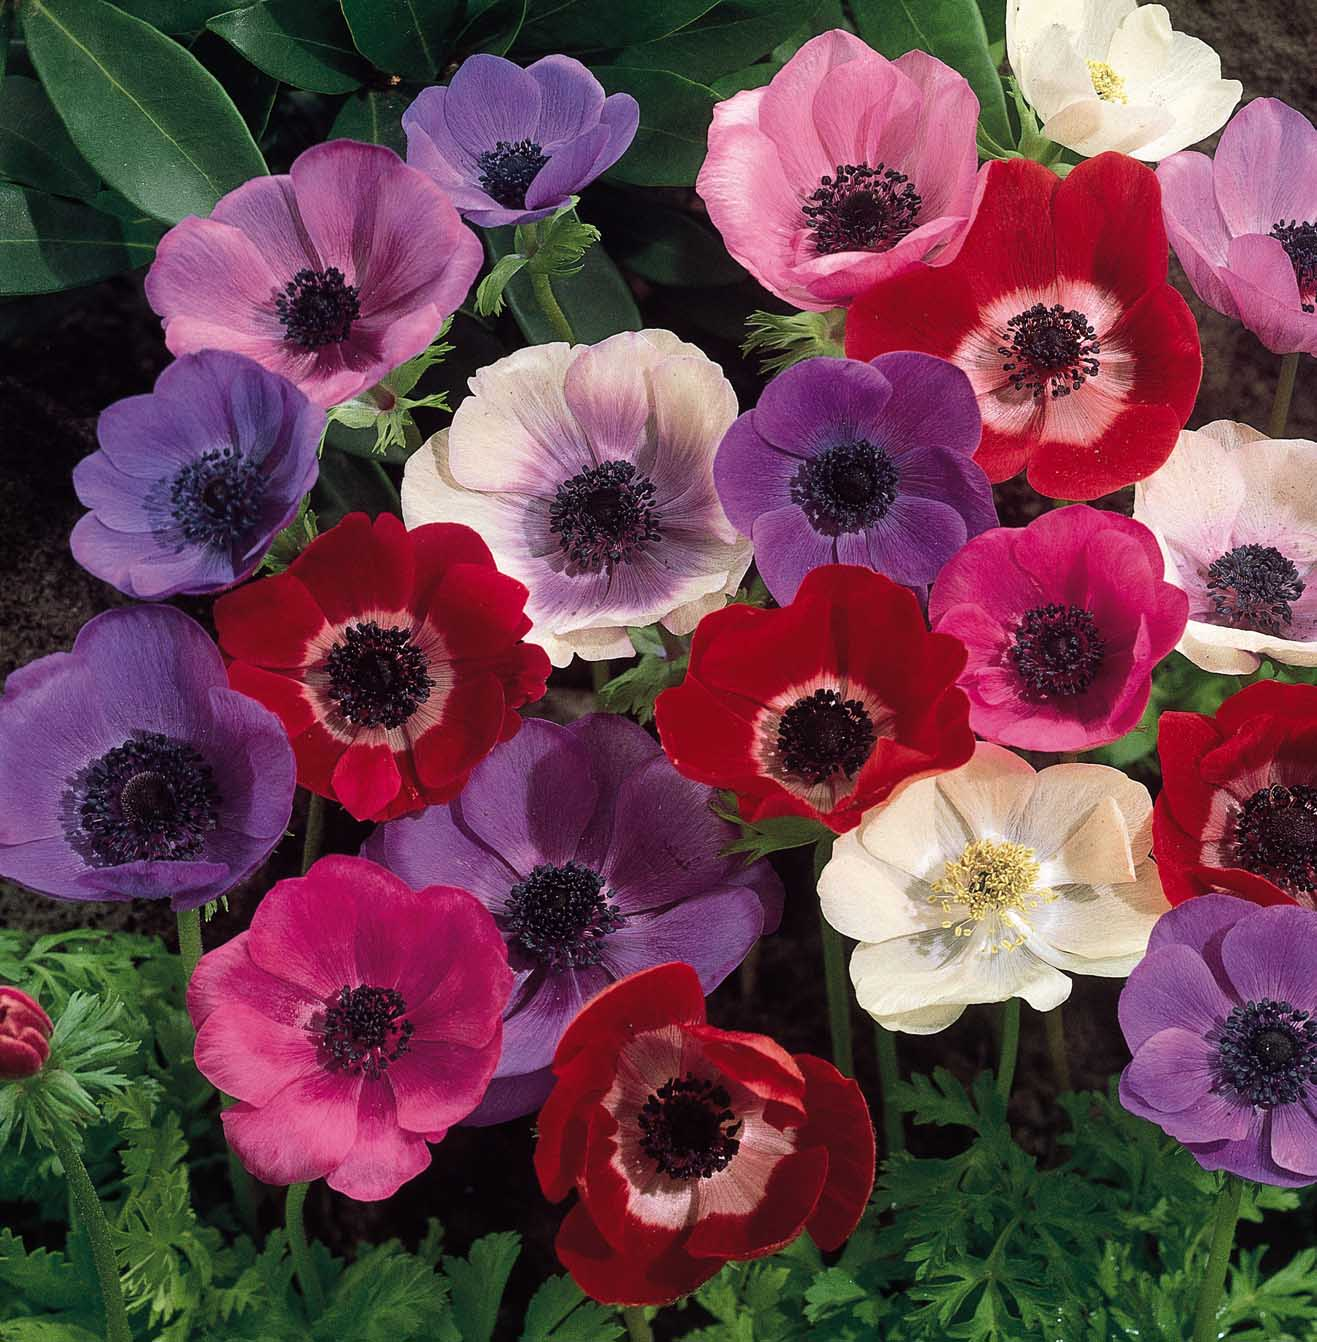 3d Wallpapers Hd Flowers Wallpapers Free Download